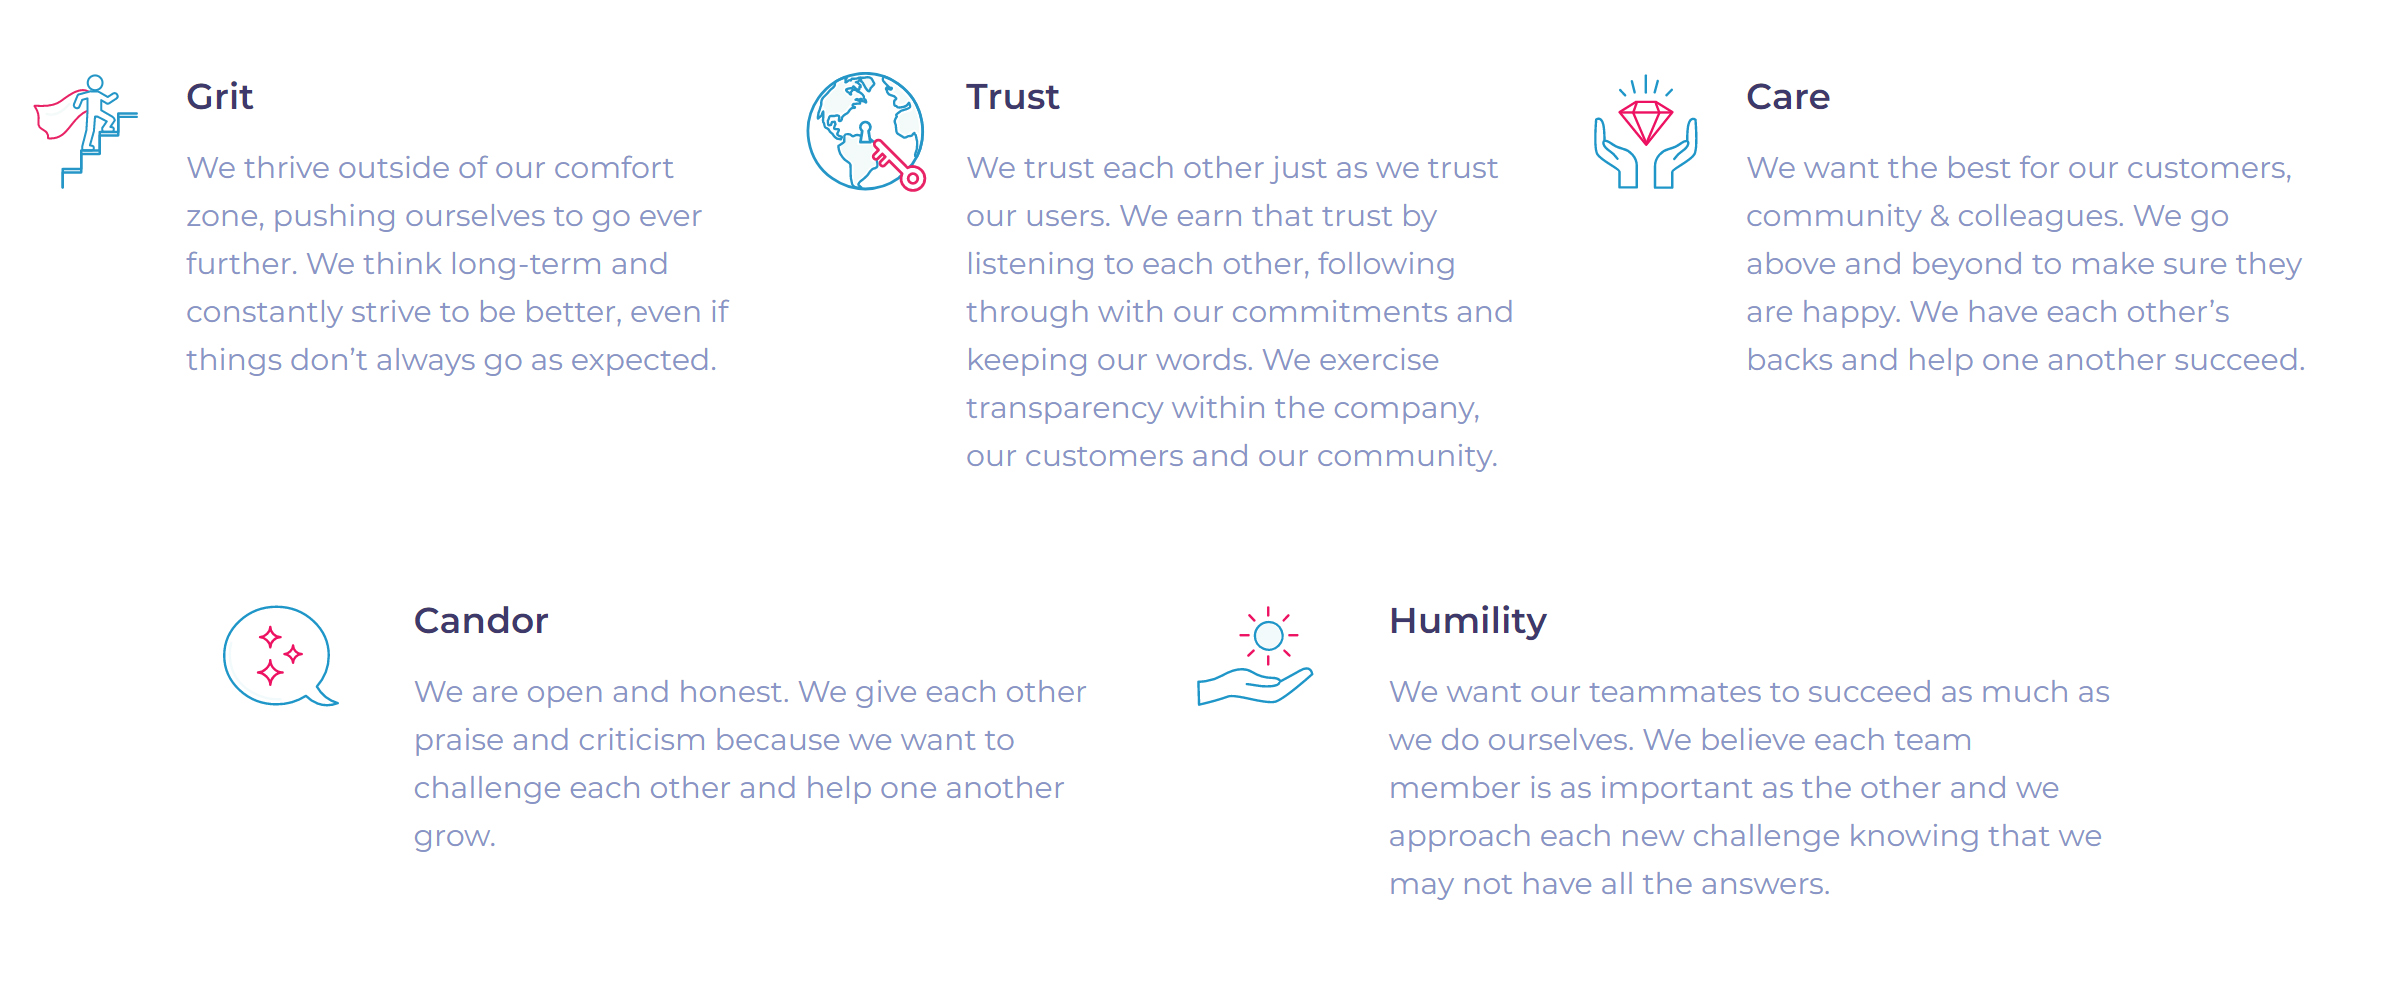 algolia values